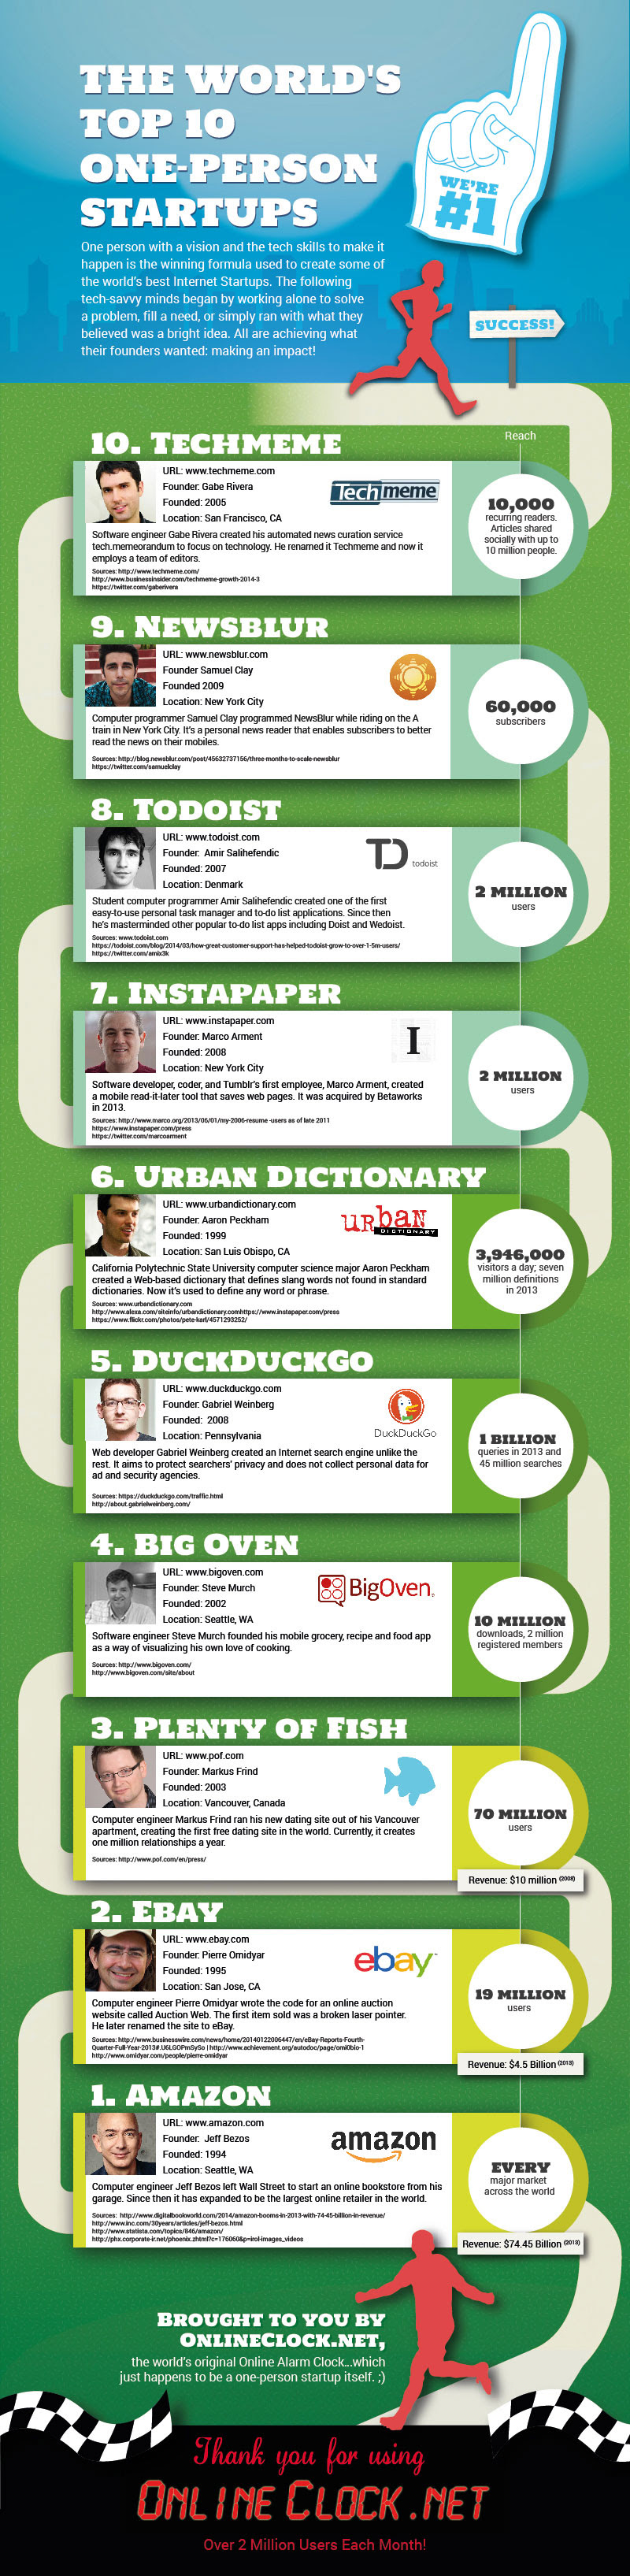 Online Clock's Top 10 One Person Startups